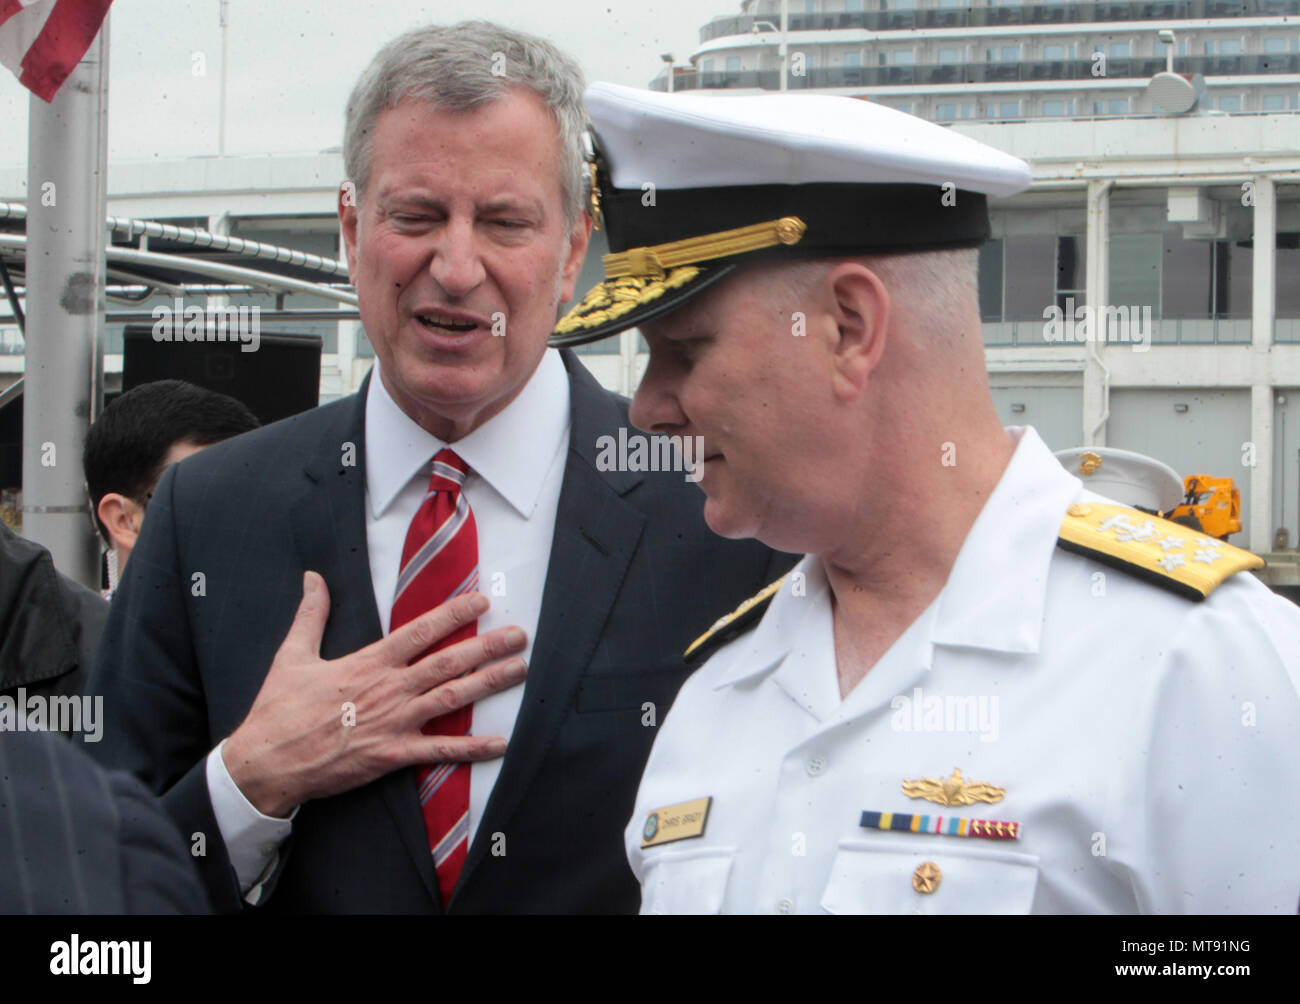 New York, NY, USA. 28th May, 2018. (L-R) New York City Mayor Bill De Blasio and Admiral Christopher Grady, United States Navy attend the 2018 Memorial Day Ceremony held aboard the U.S.S Intrepid Sea, Air, Space Museum Complex on May 28, 2018 in New York City. Credit: Mpi43/Media Punch/Alamy Live News - Stock Image